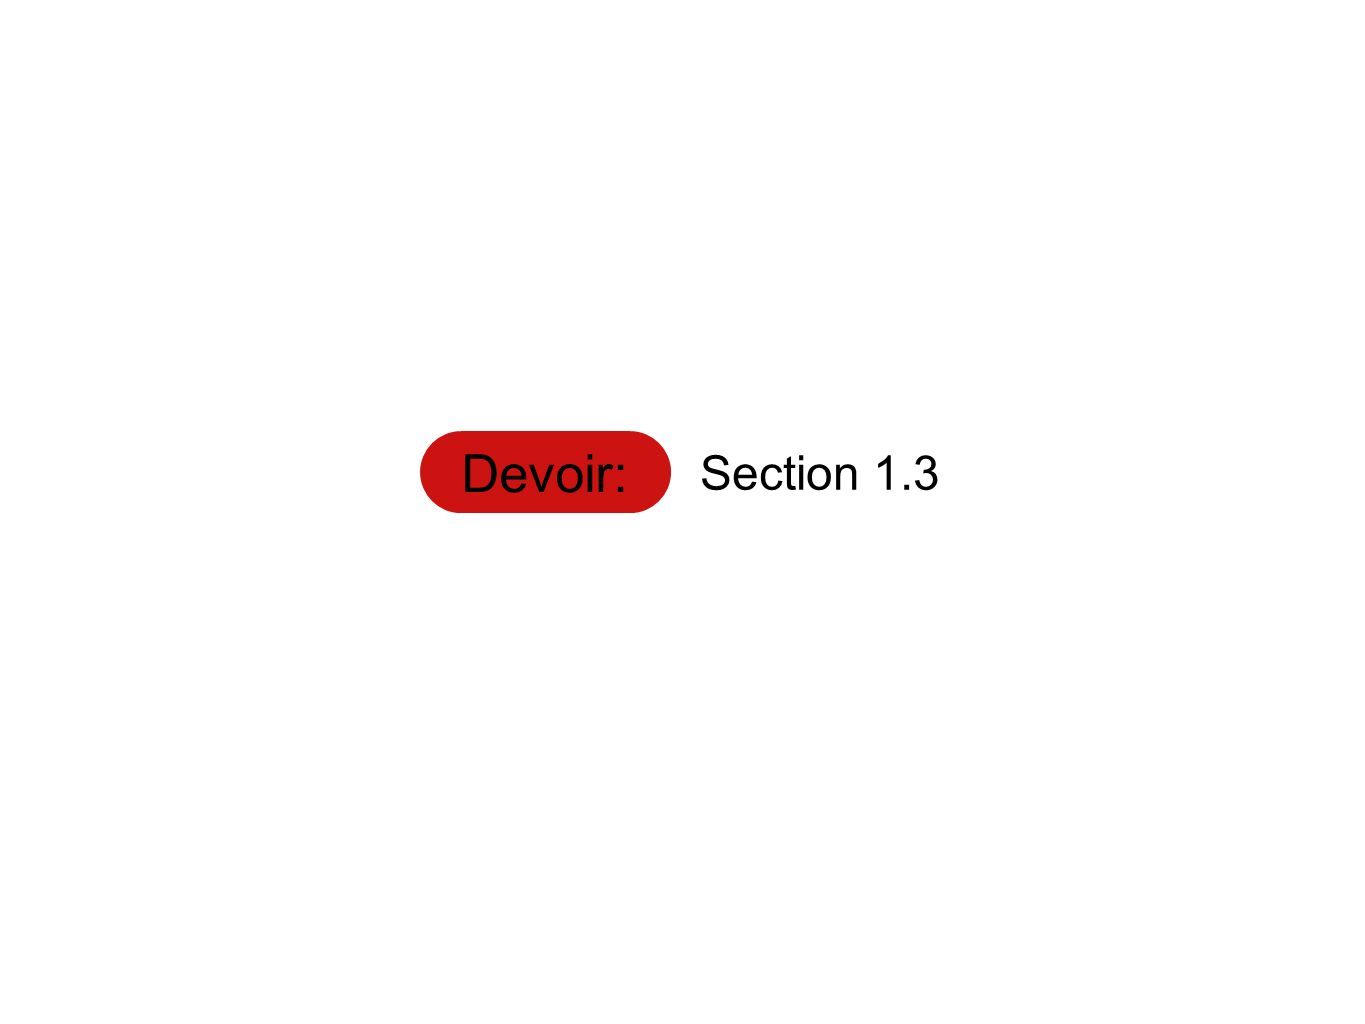 Devoir: Section 1.3